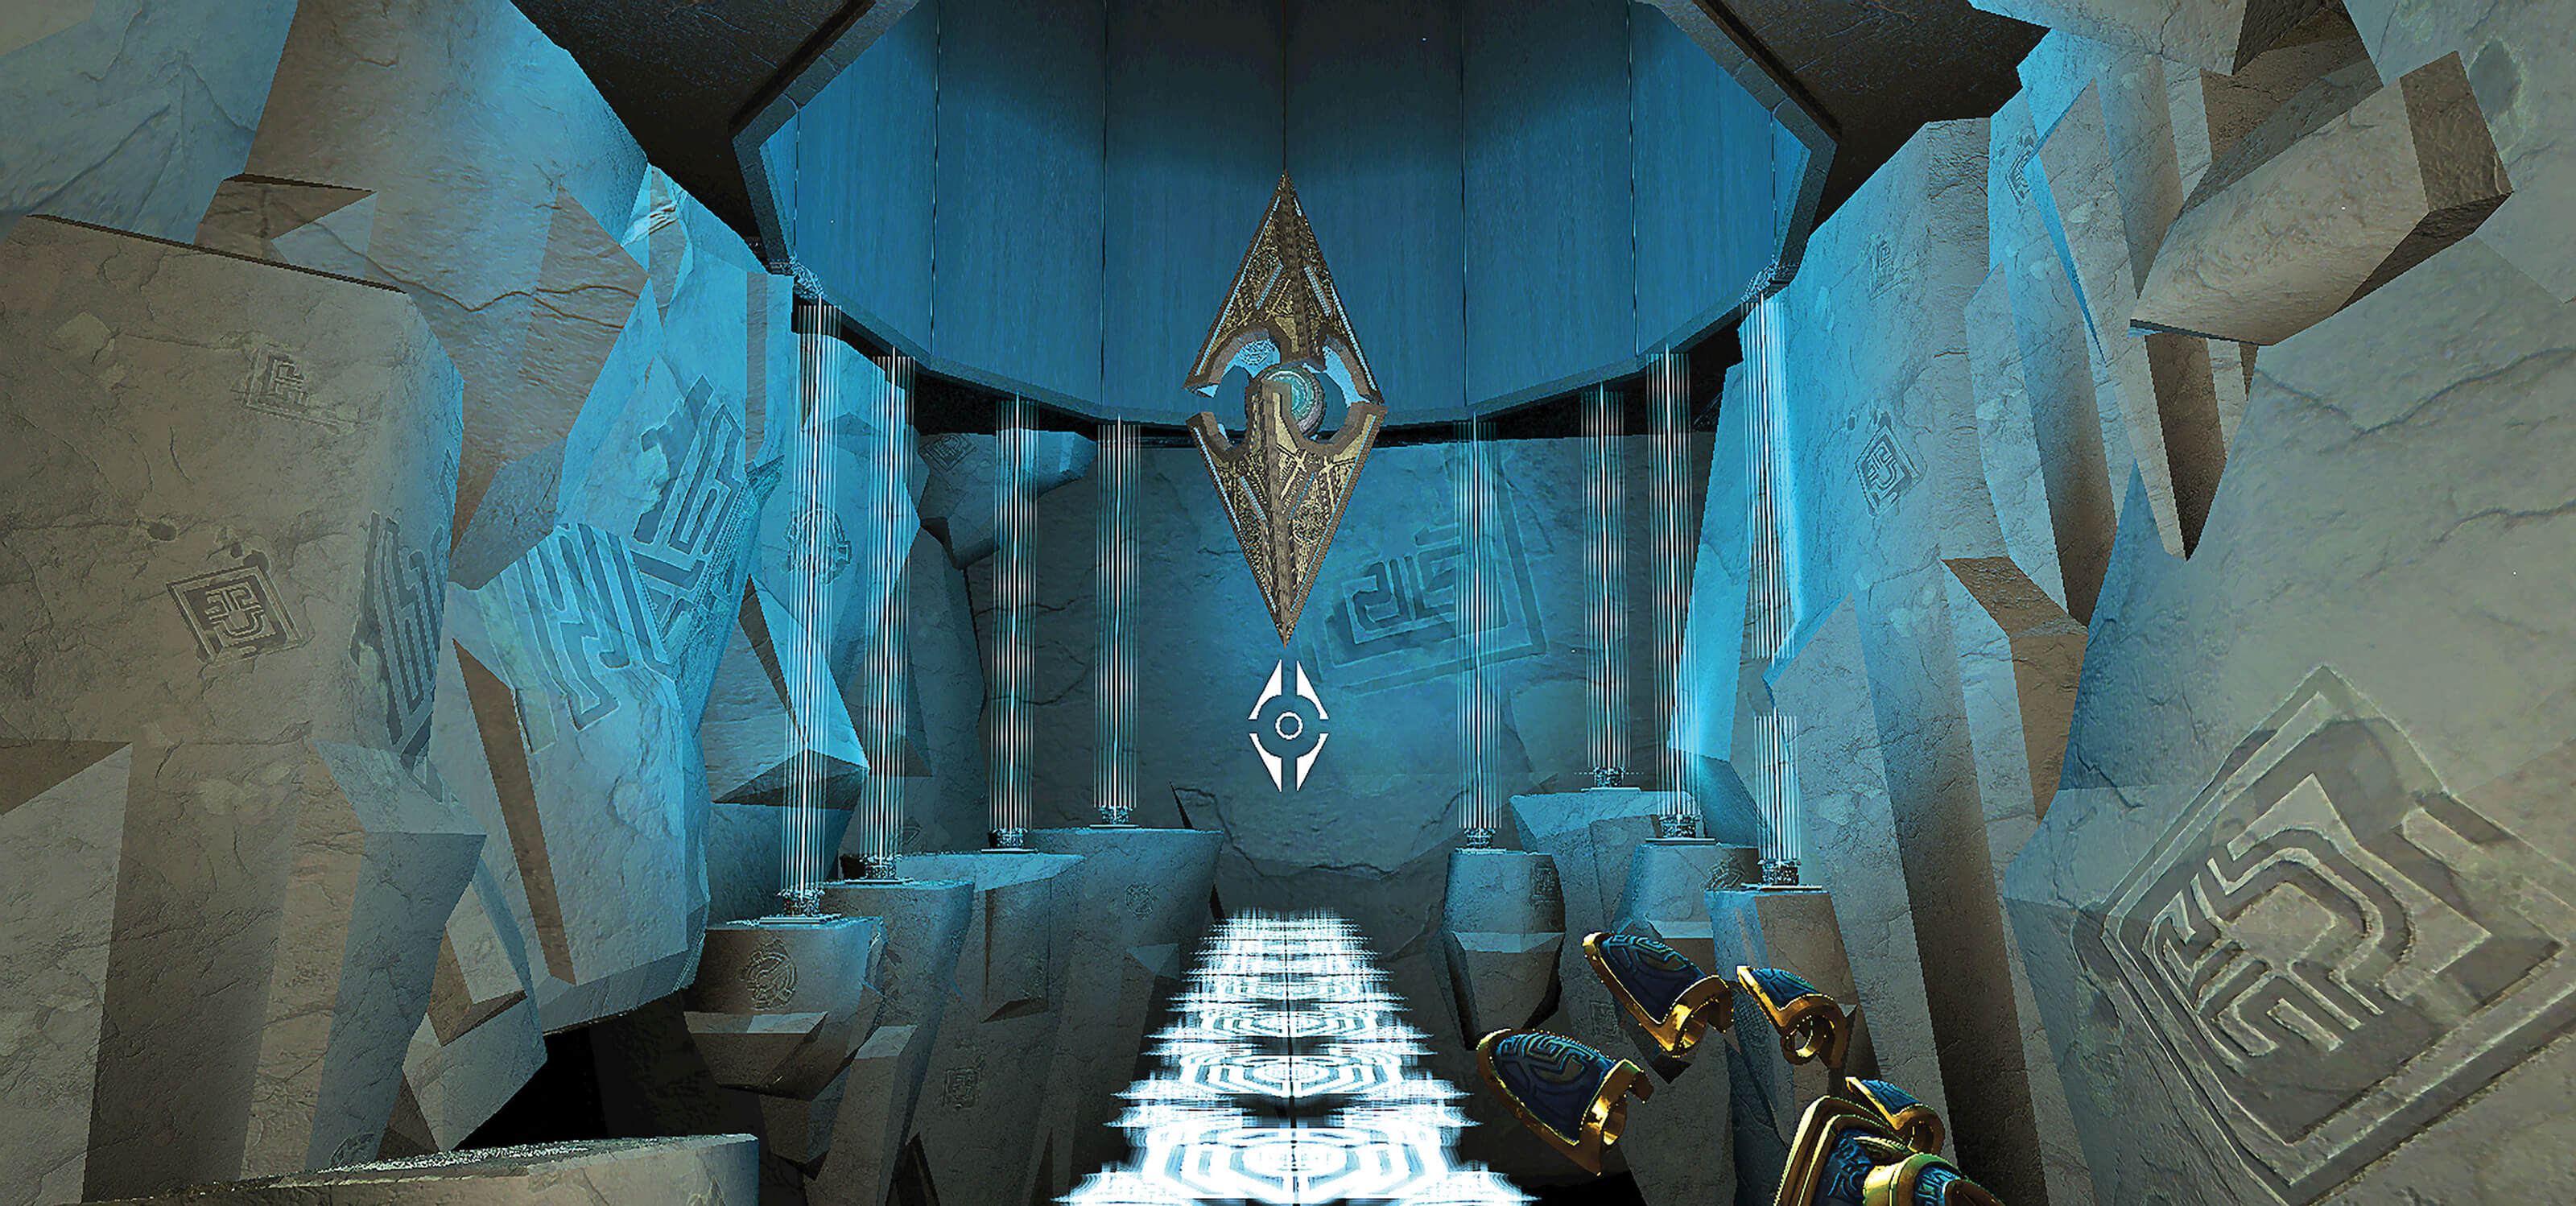 Screenshot from DigiPen Europe-Bilbao student game Inaris: The Cloud Temple featuring a gloved hand reaching toward a diamond-shaped object floating above the ground